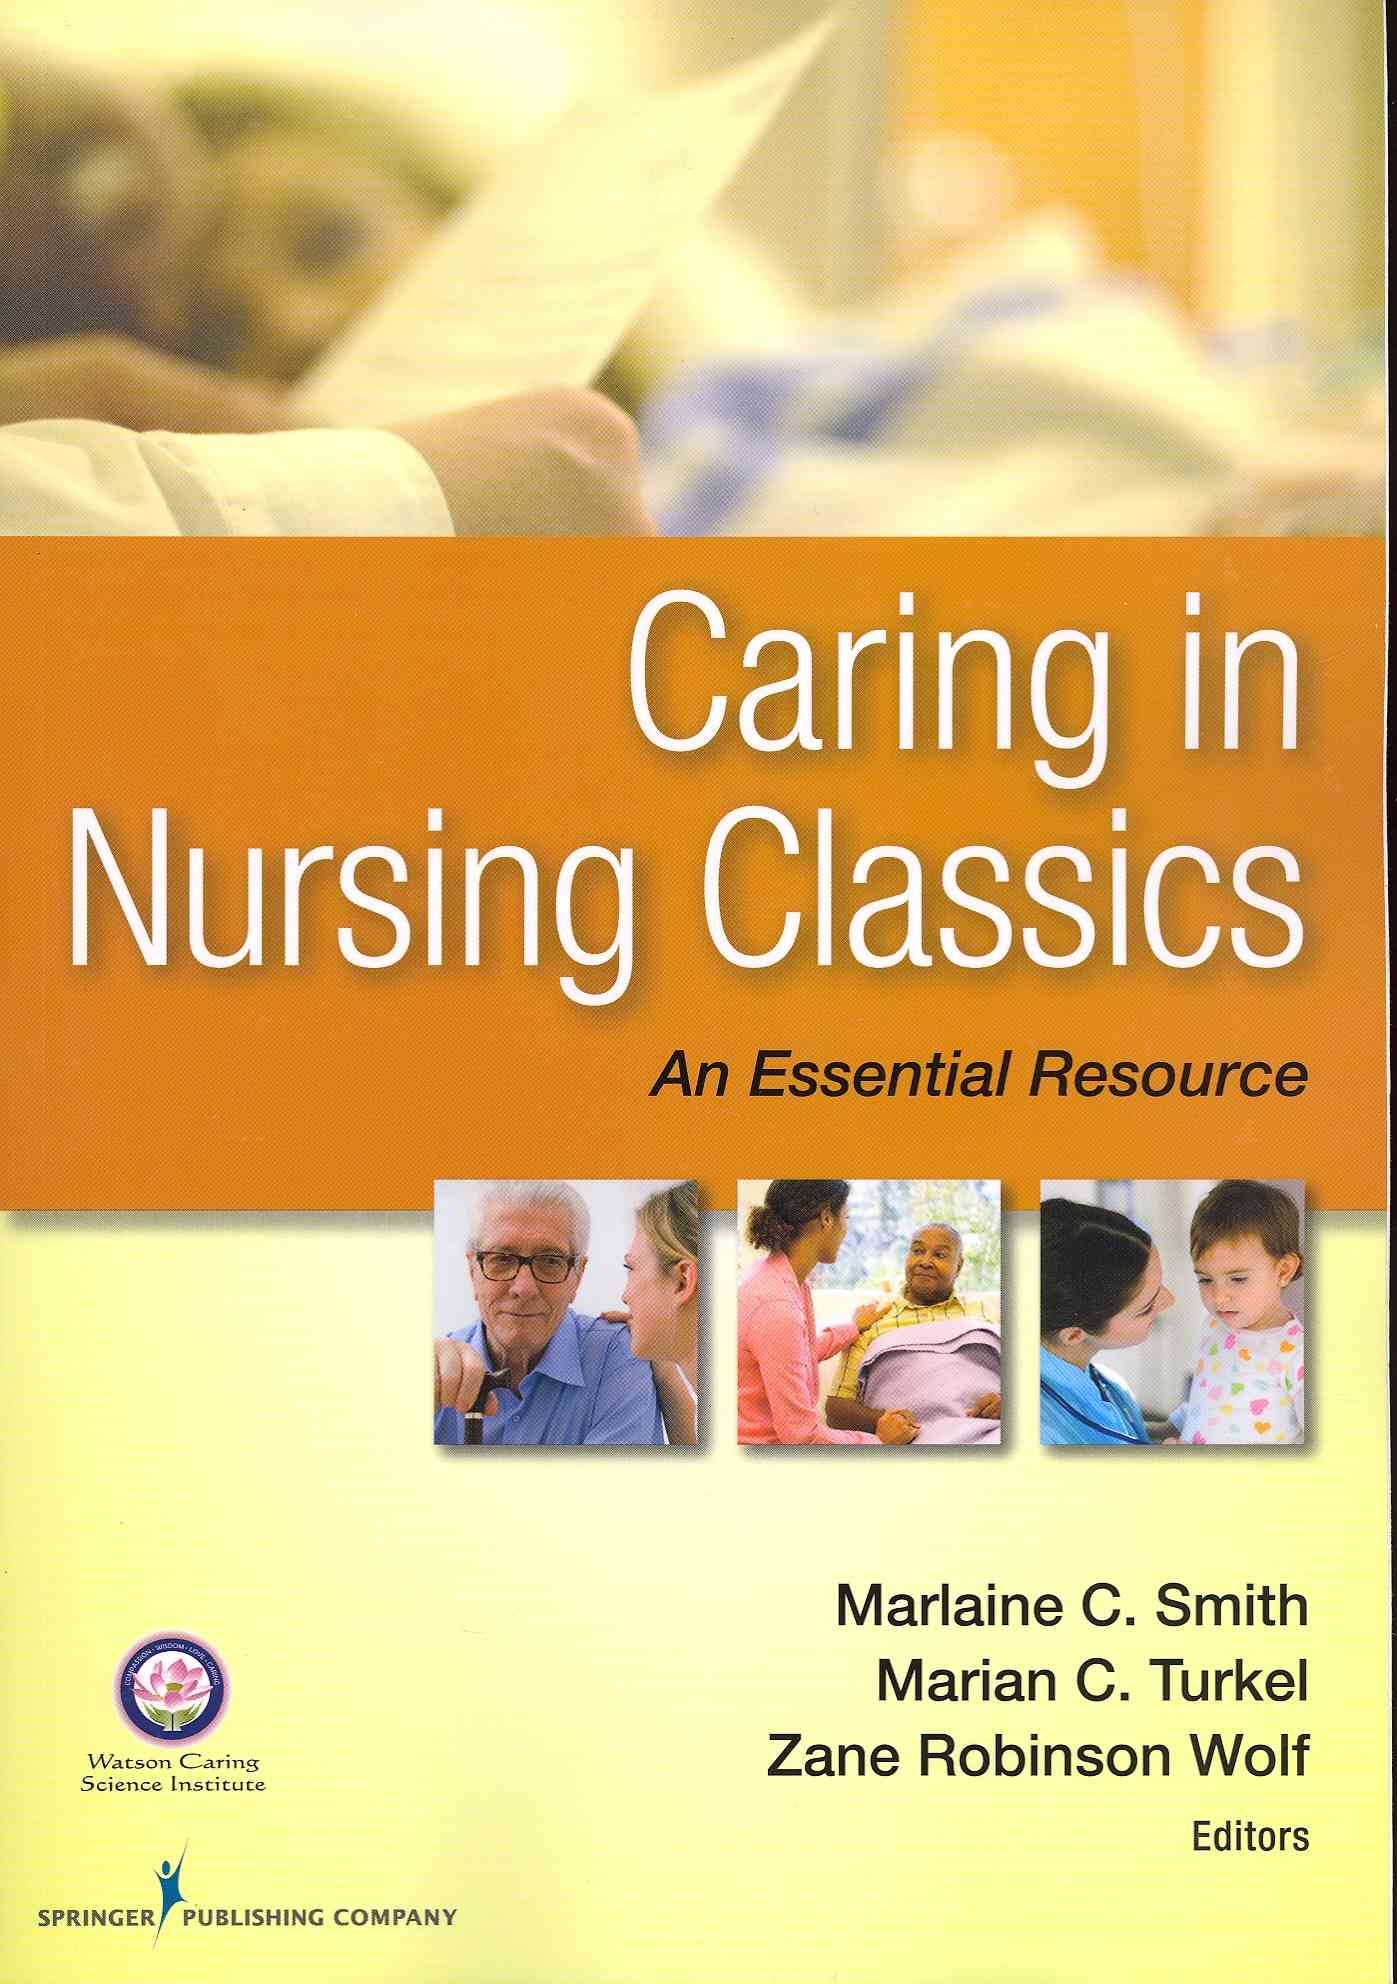 Caring in Nursing Classics By Smith, Marlaine C. (EDT)/ Turkel, Marian C. (EDT)/ Wolf, Zane Robinson (EDT)